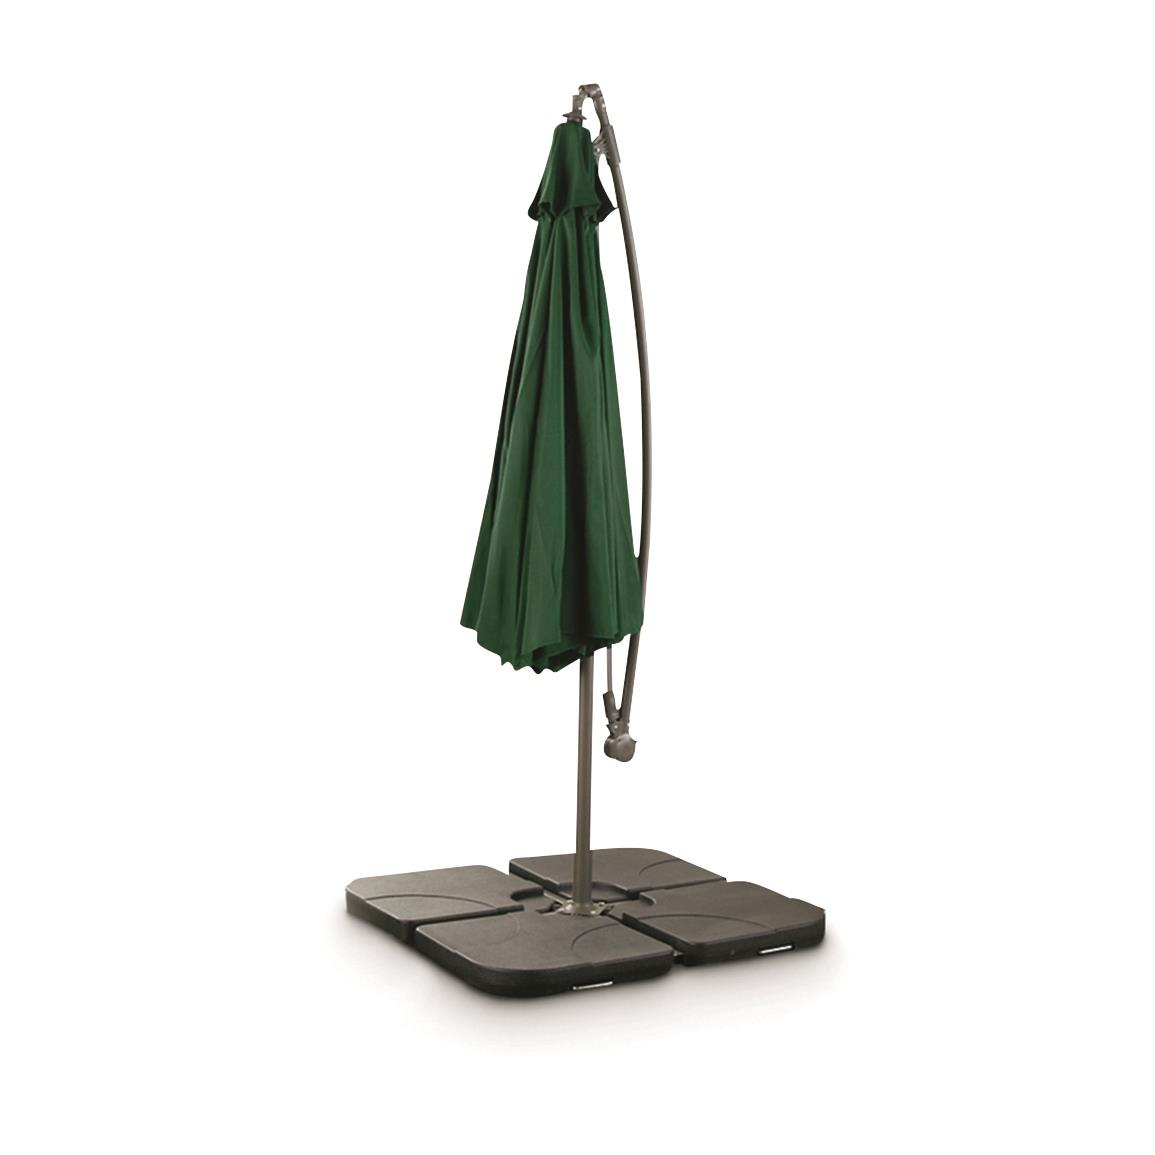 CASTLECREEK 10' Cantilever Patio Umbrella, Hunter Green